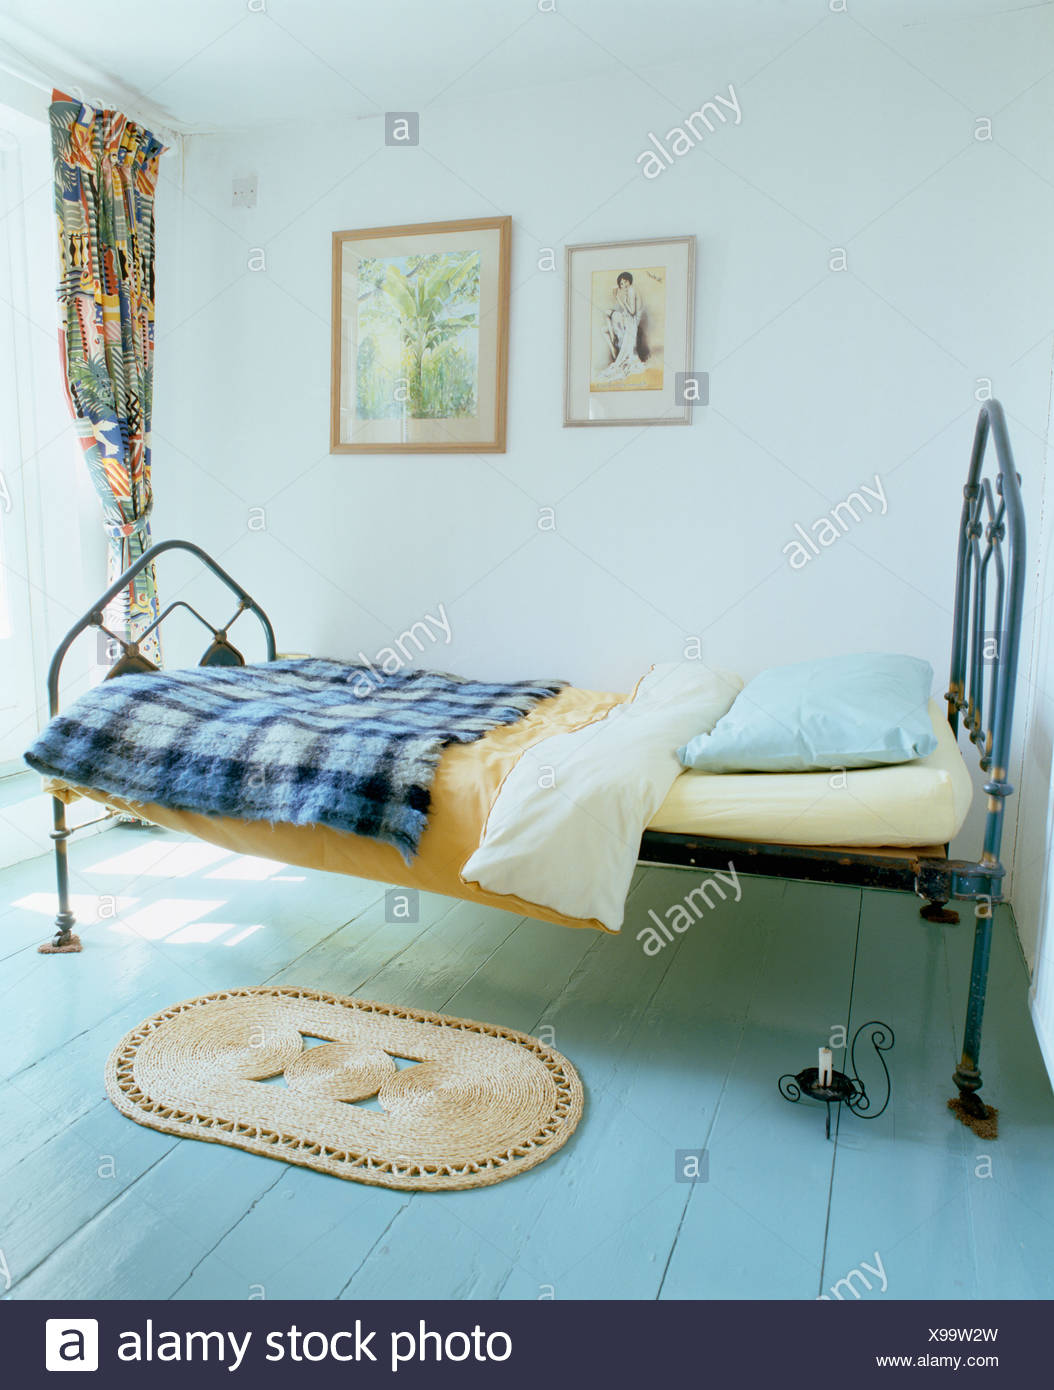 Single Cast Iron Bed With Blue Checked Throw In Simple White Bedroom With Small Rug On Pastel Blue Painted Wooden Flooring Stock Photo Alamy